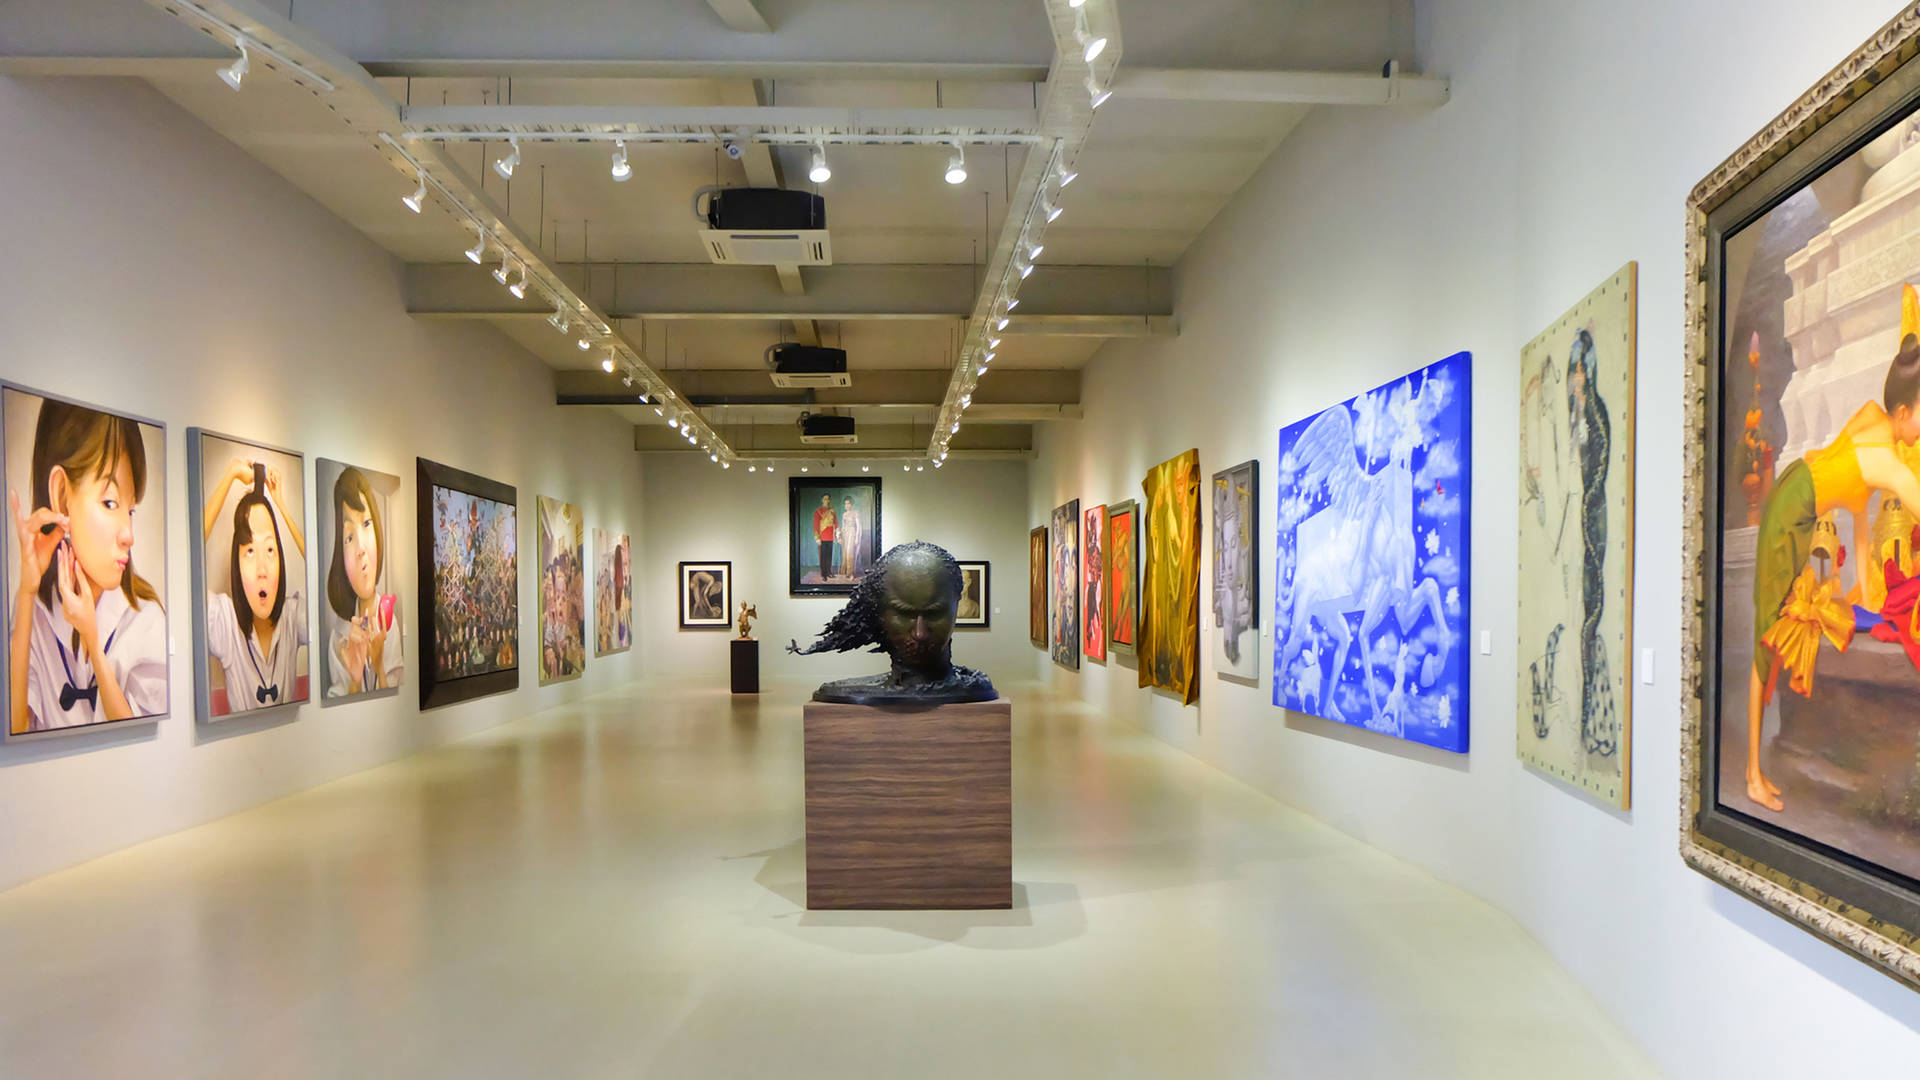 The interior of a modern art gallery